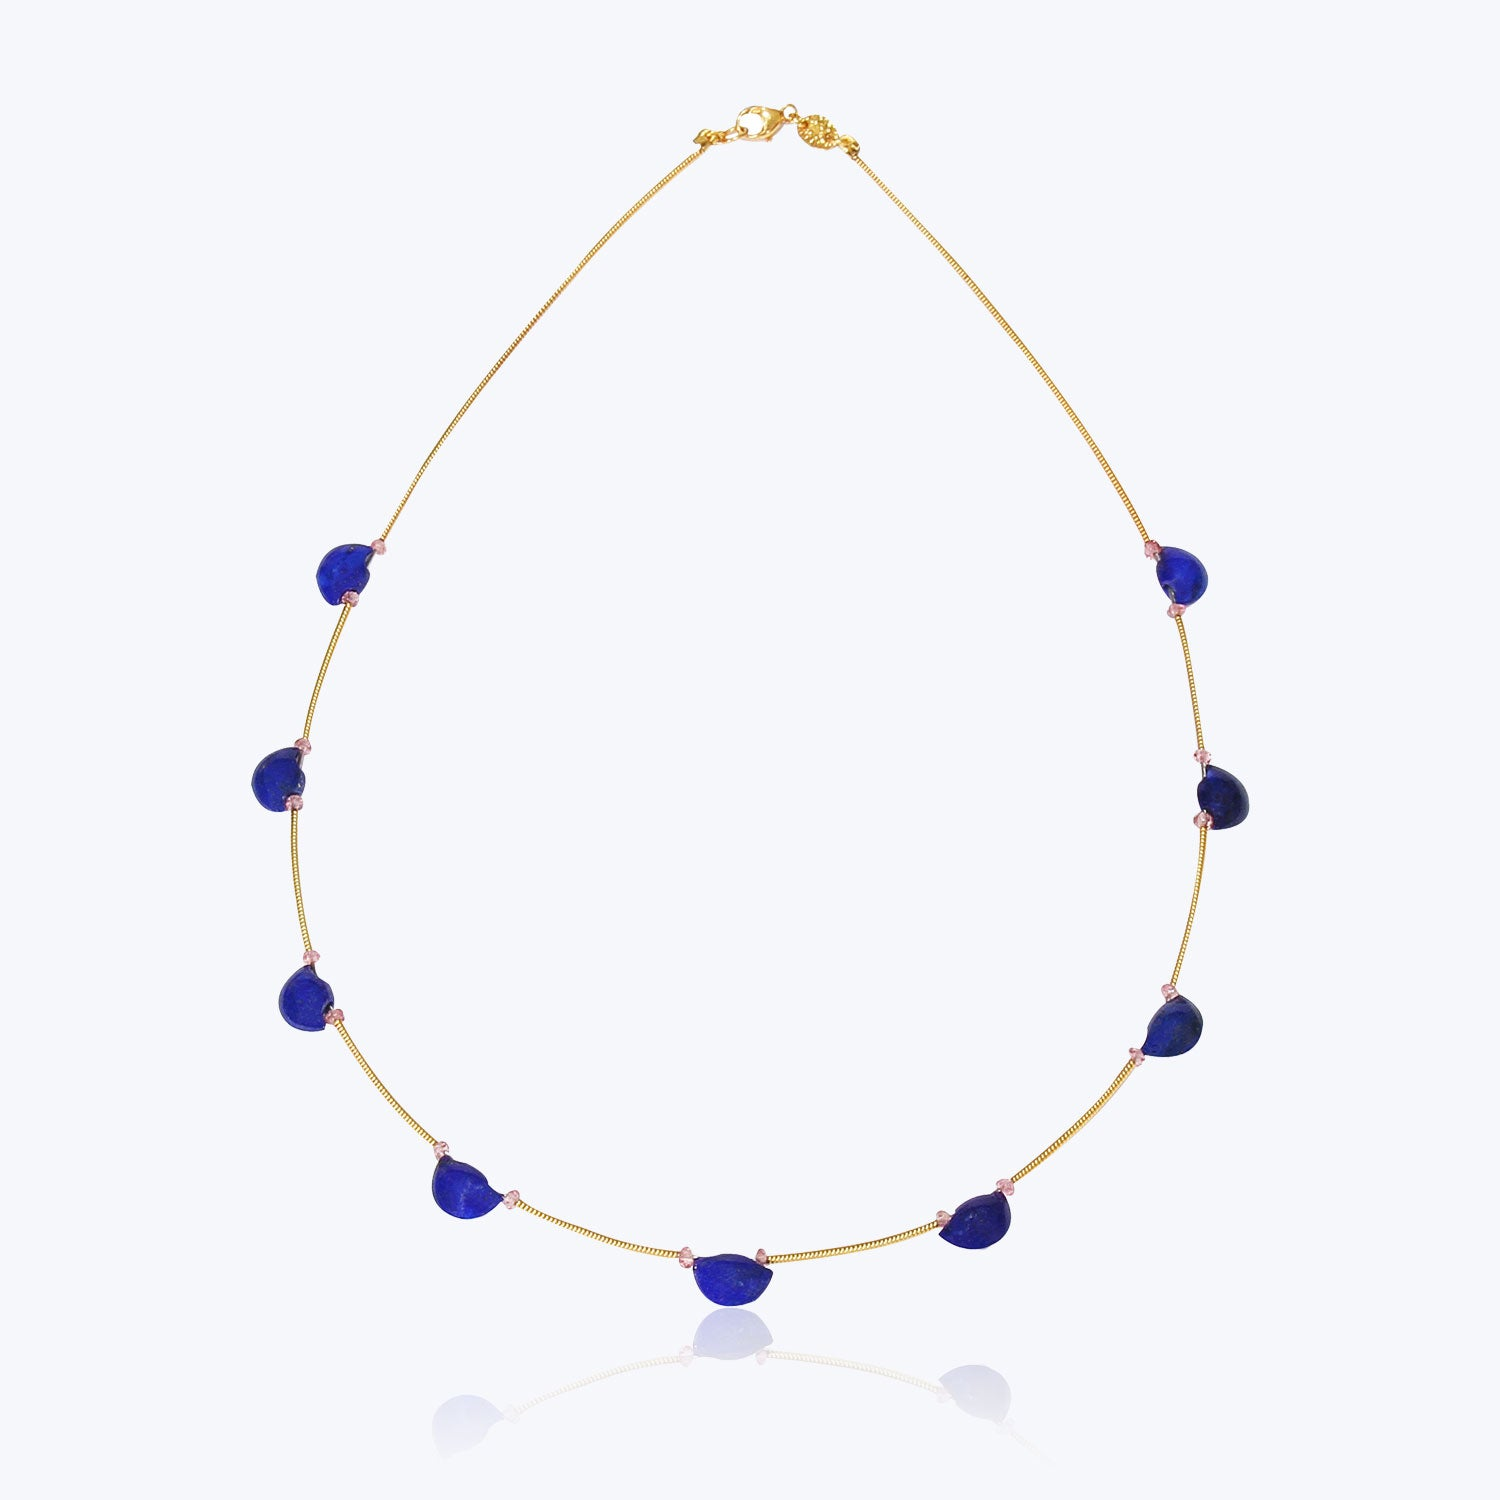 Taveez Necklace with Lapis